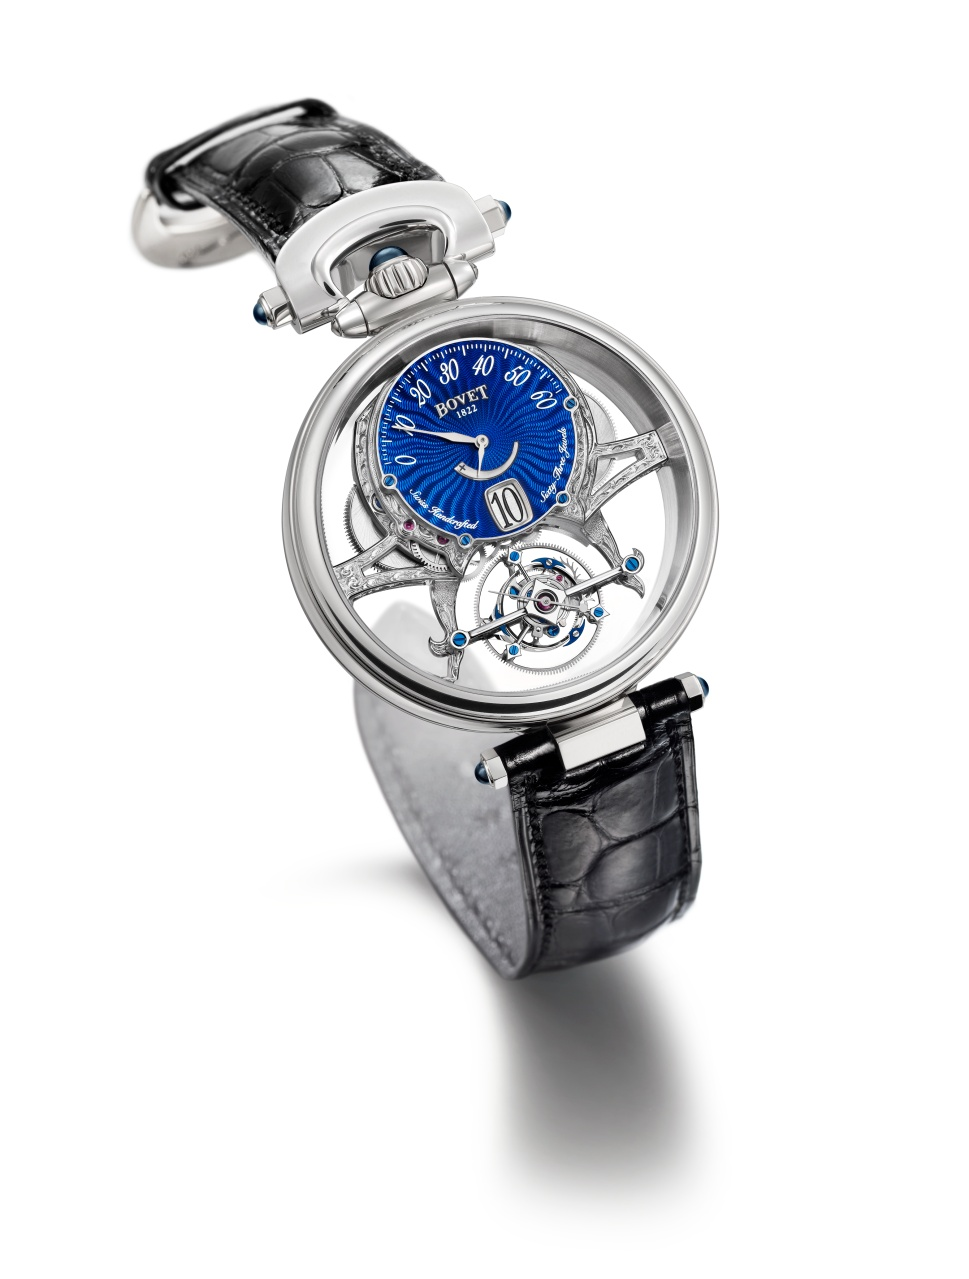 Bovet Watch   Amadeo Fleurier Grandes Complications   Ref. Nr.  AIVI016    Call 312-944-3100  | For Availability